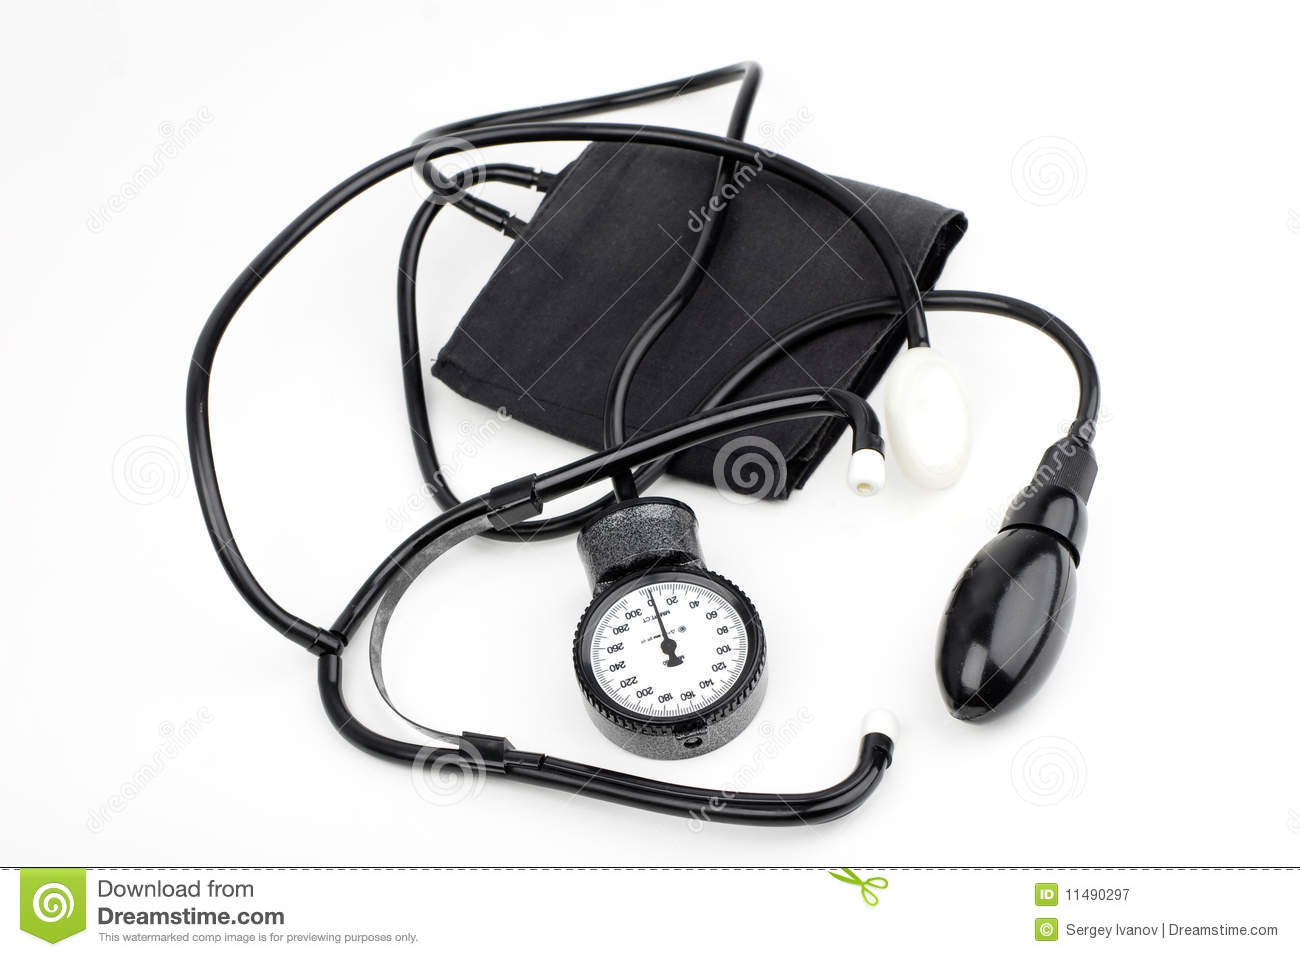 how to take blood pressure with sphygmomanometer